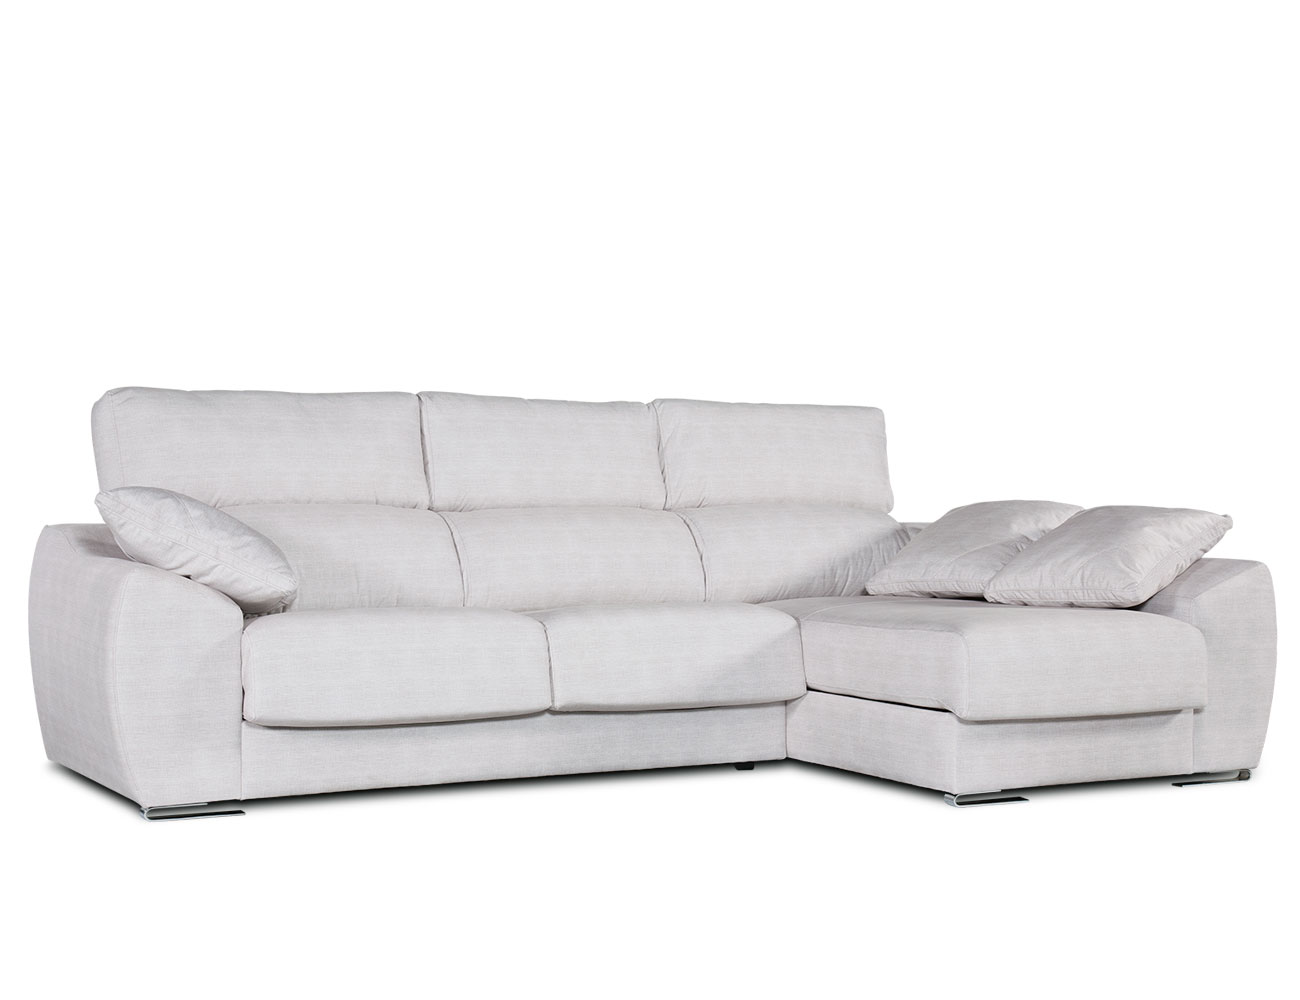 Sofa chaiselongue moderno blanco 11